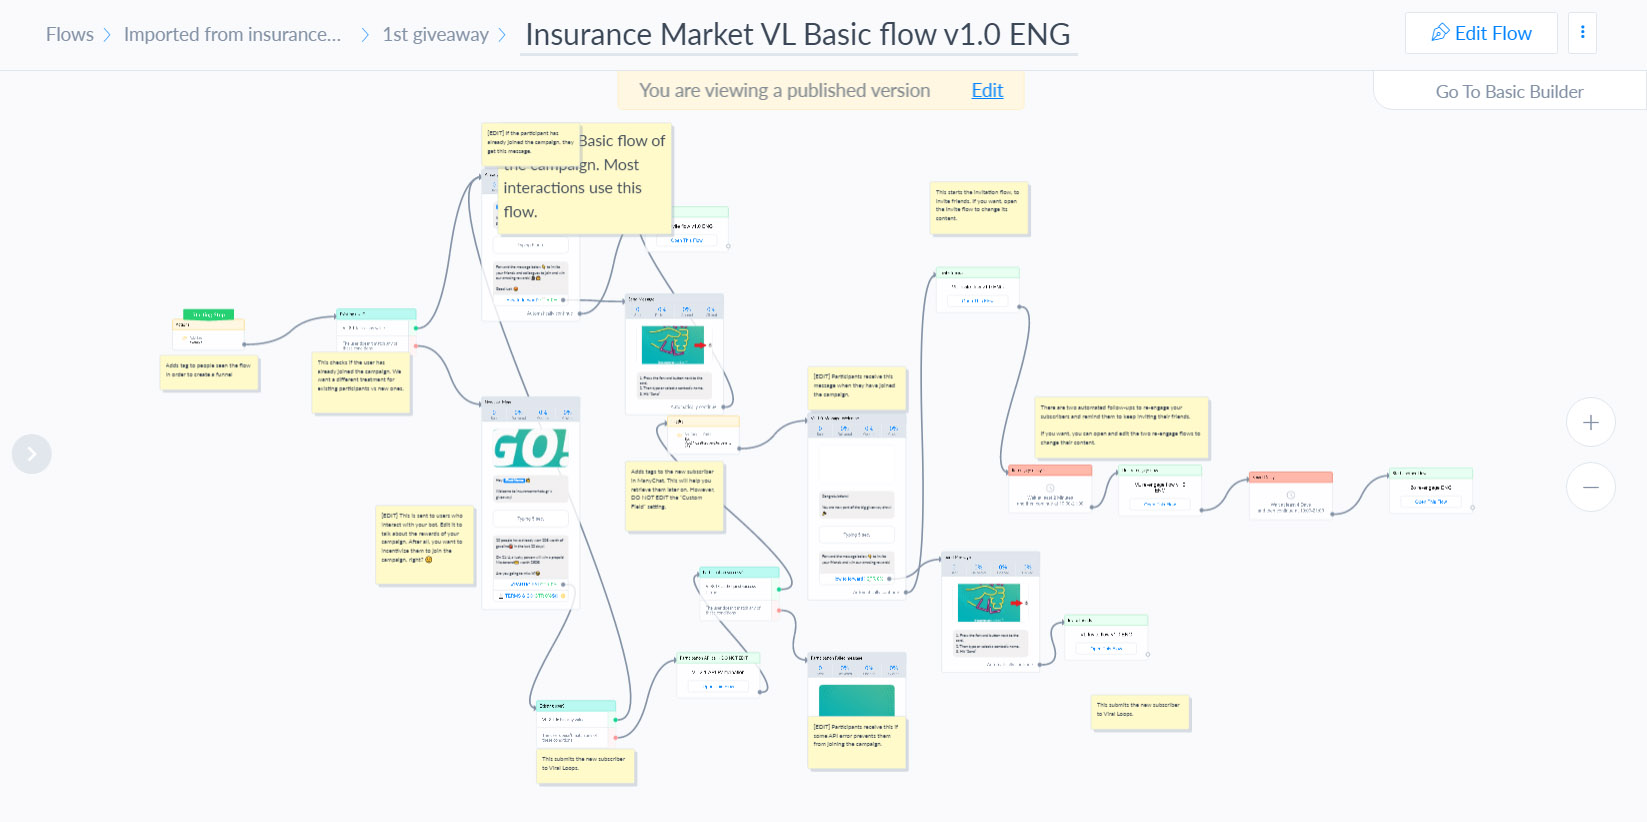 Insurance Market Basic Messenger Flow